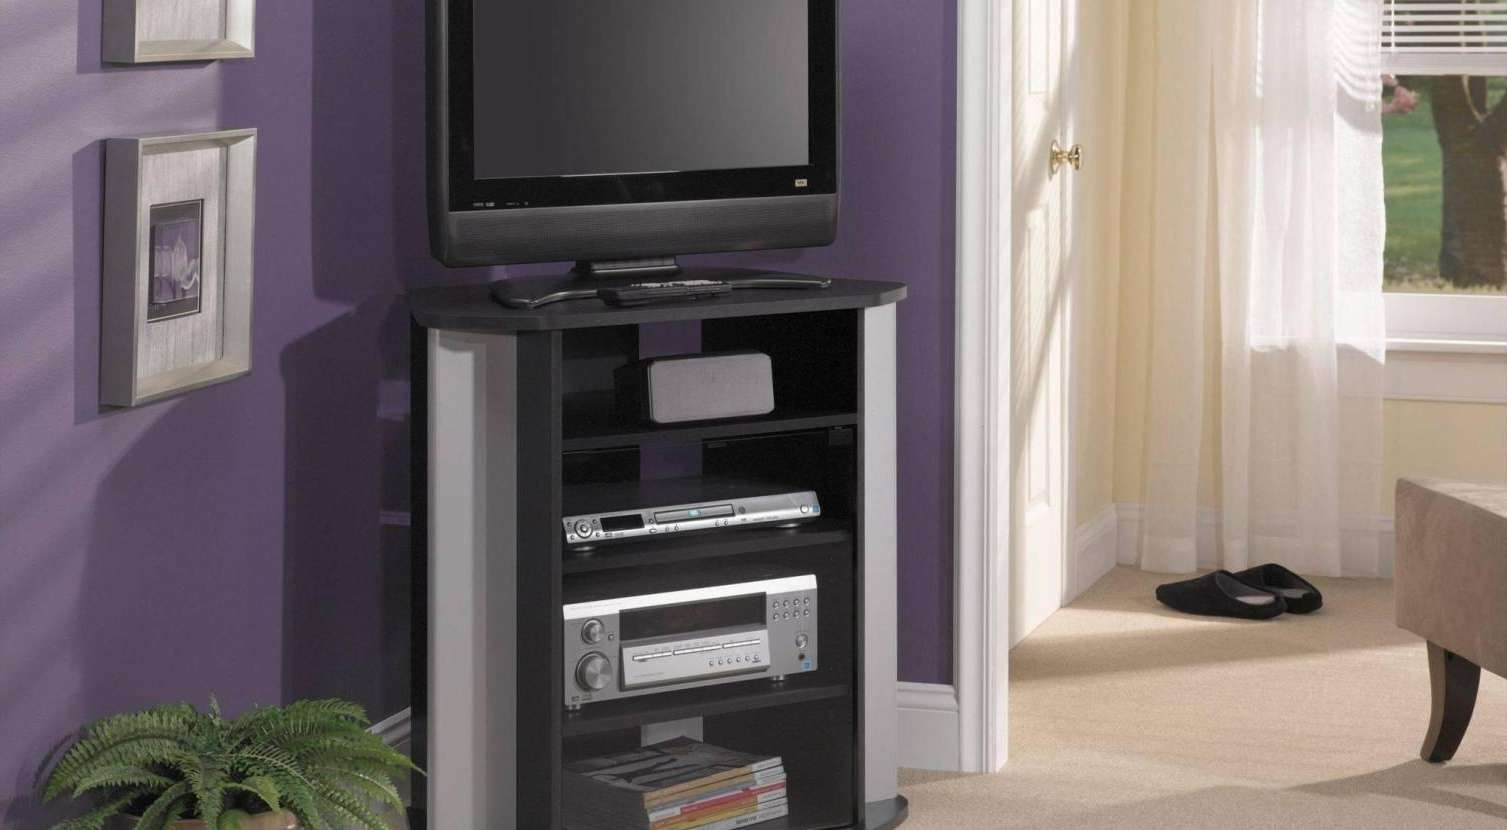 Tv : Awesome Cheap Cantilever Tv Stands Jual Furnishings Jf Curved With Regard To Cheap Cantilever Tv Stands (View 15 of 15)